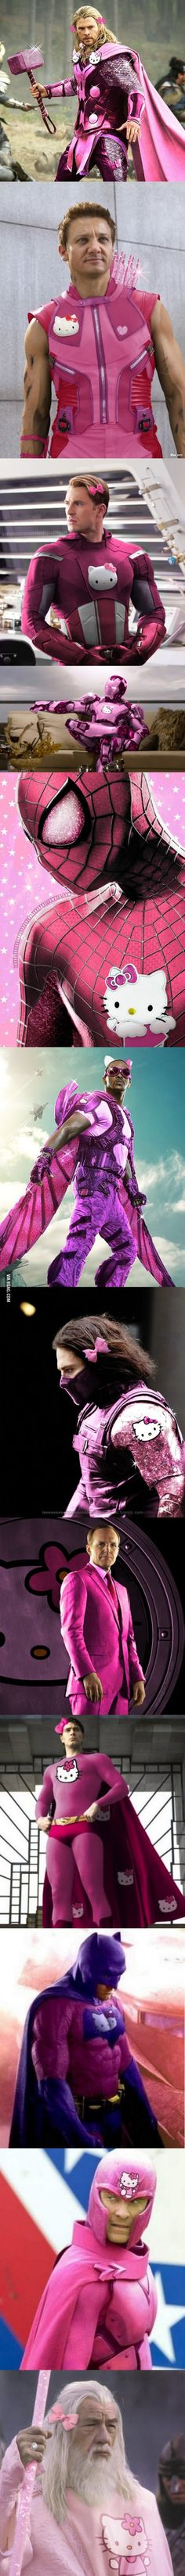 Warning: CANNOT BE UNSEEN! Lol Photoshop Experts Hello Kitty-fy Masculine Superheroes With Sparkly Pink Costumes